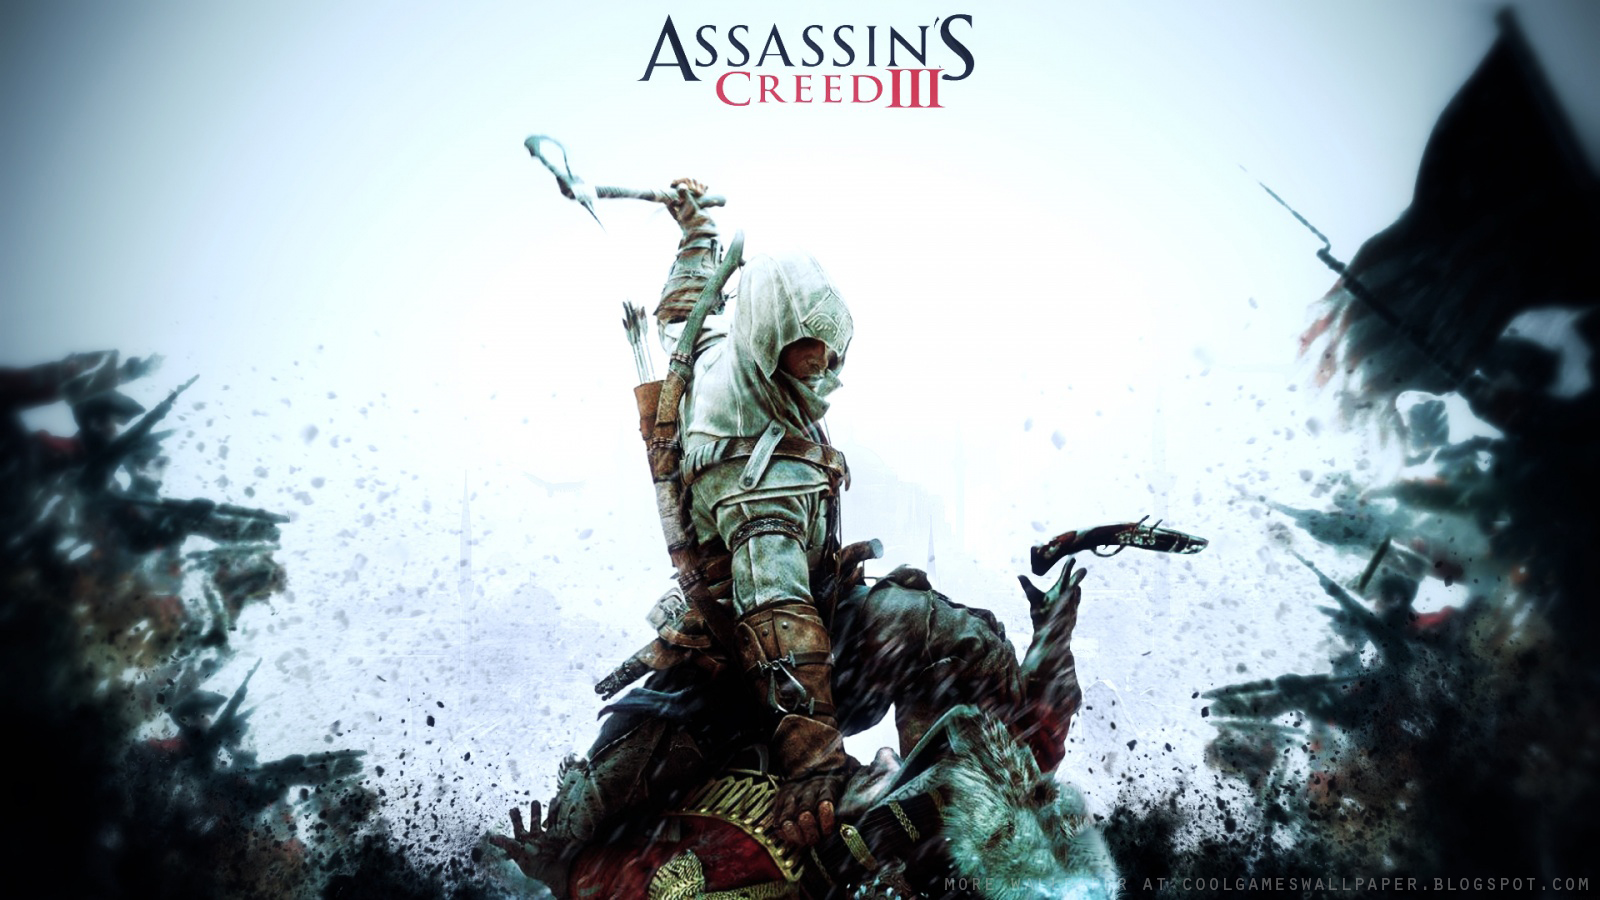 Assassin S Creed 3 Wallpaper 2 Cool Games Wallpaper